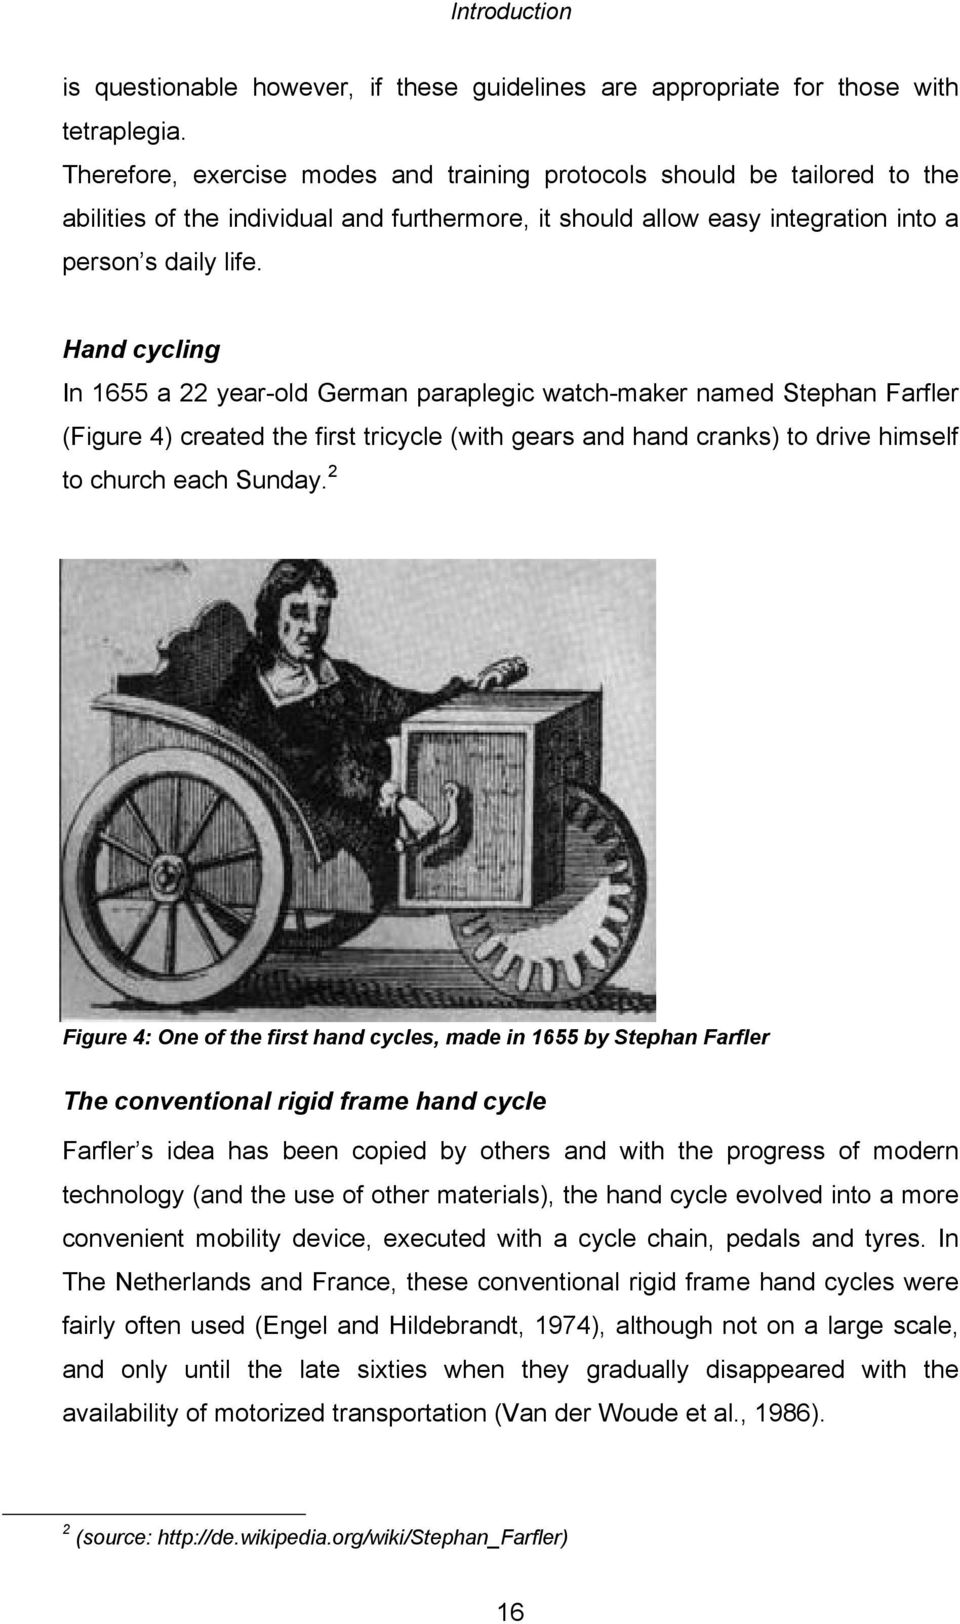 Hand cycling In 1655 a 22 year-old German paraplegic watch-maker named Stephan Farfler (Figure 4) created the first tricycle (with gears and hand cranks) to drive himself to church each Sunday.